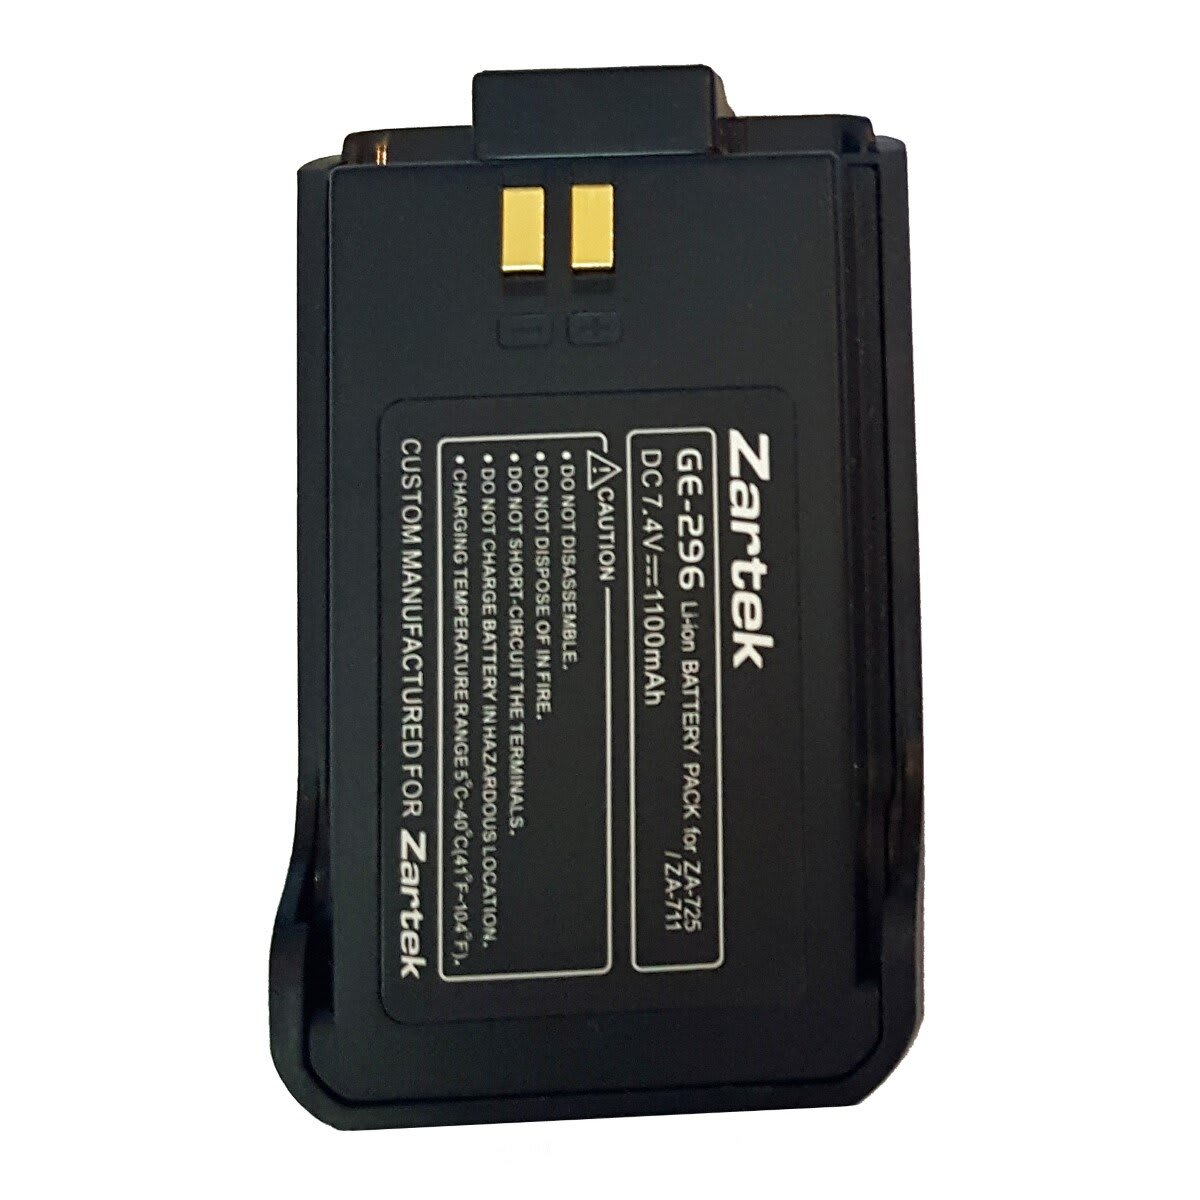 Zartek ZA-725 spare battery